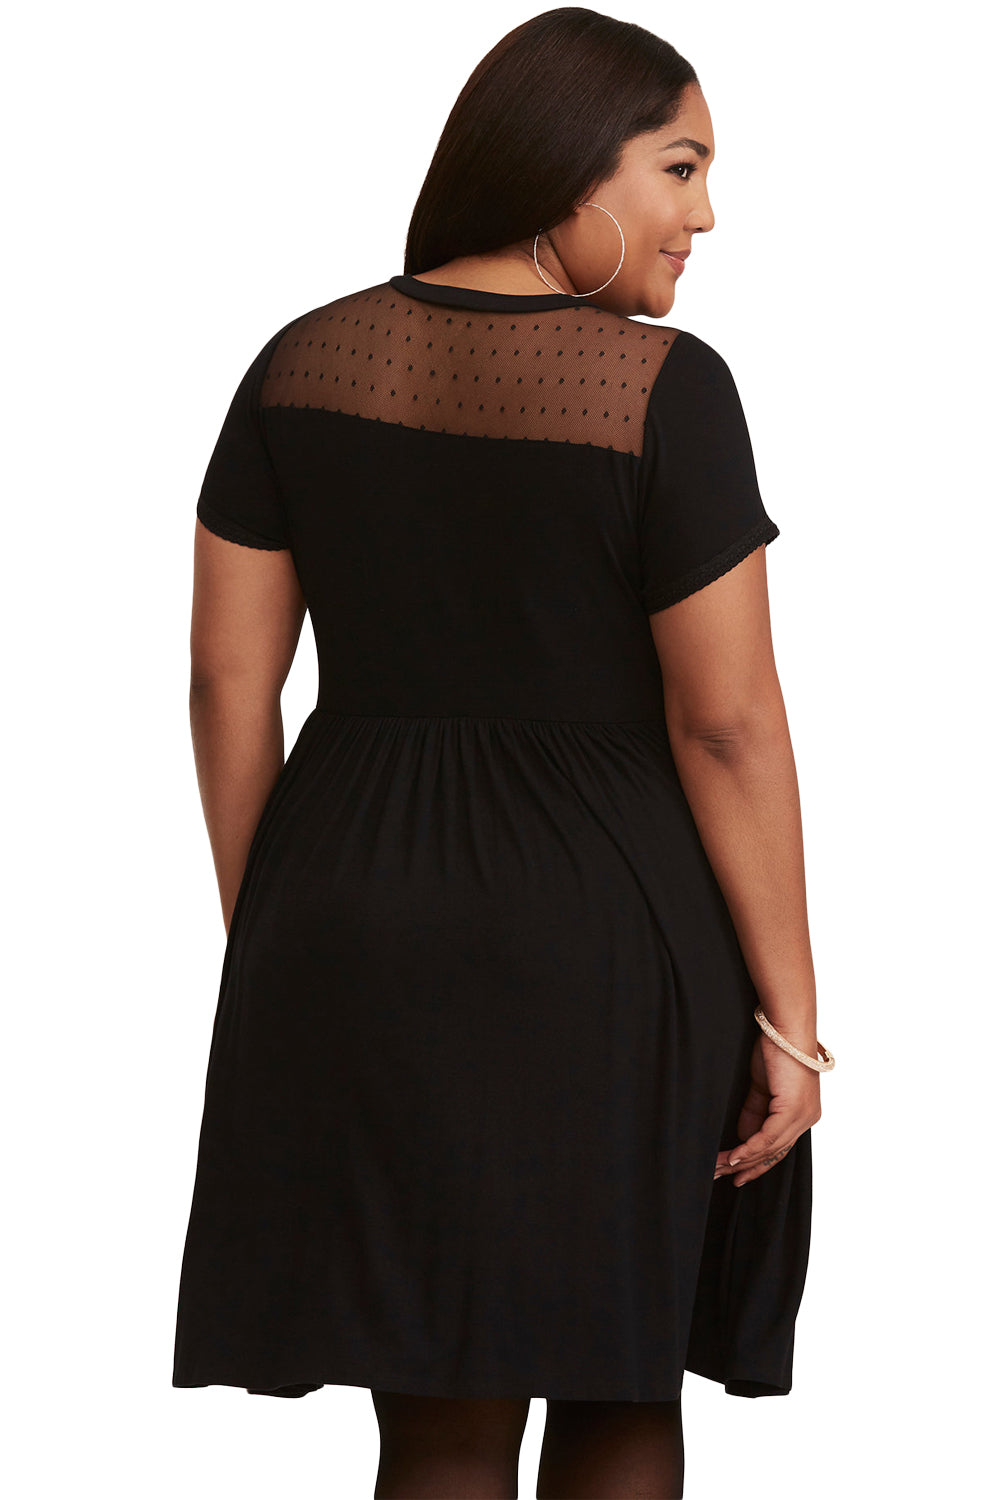 Black Dot Mesh Inset Plus Size Skater Dress LAVELIQ